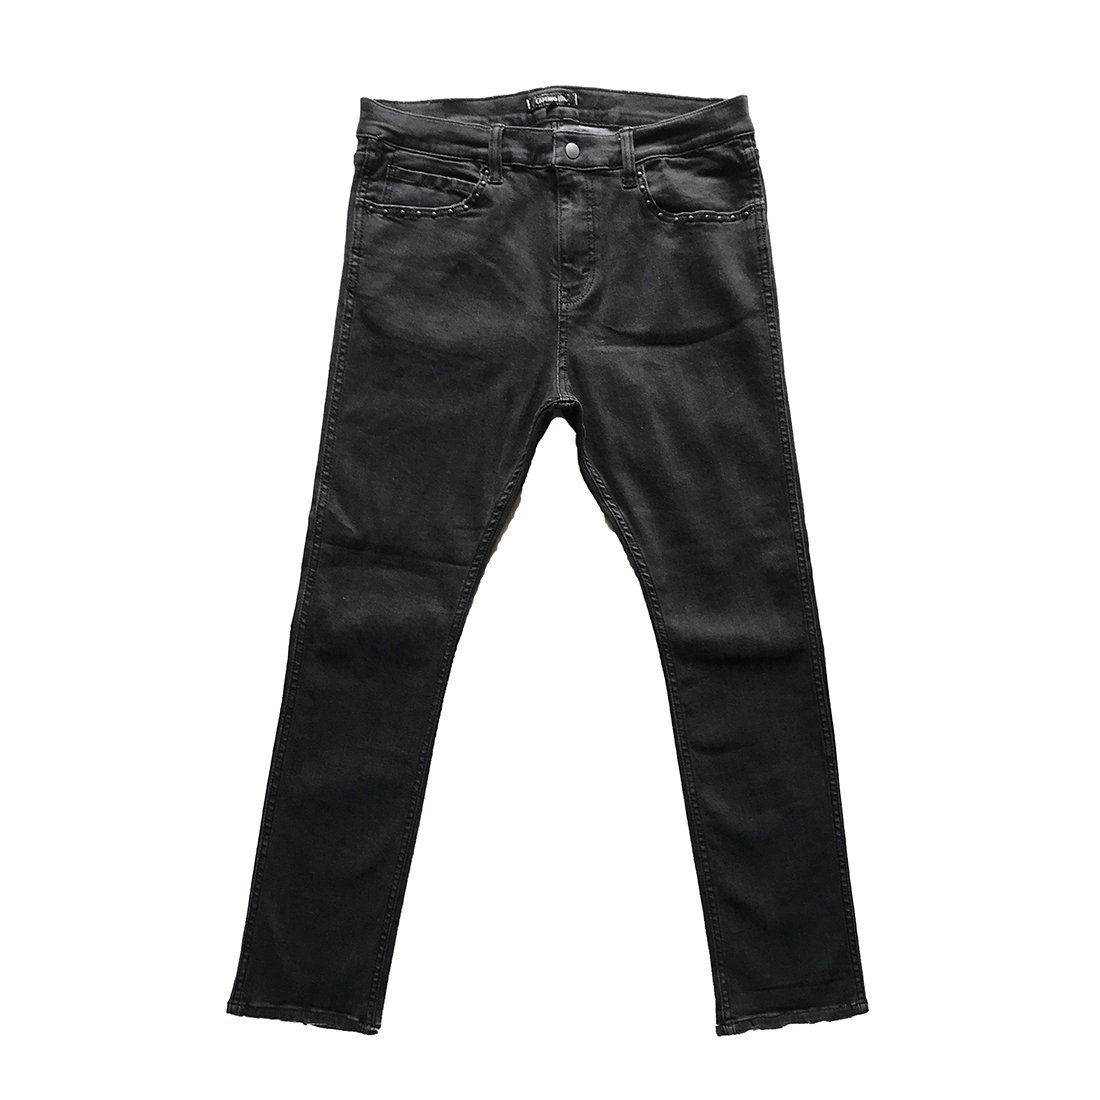 CAPTAINS HELM #NARROW ST BLACK DENIM PANTS